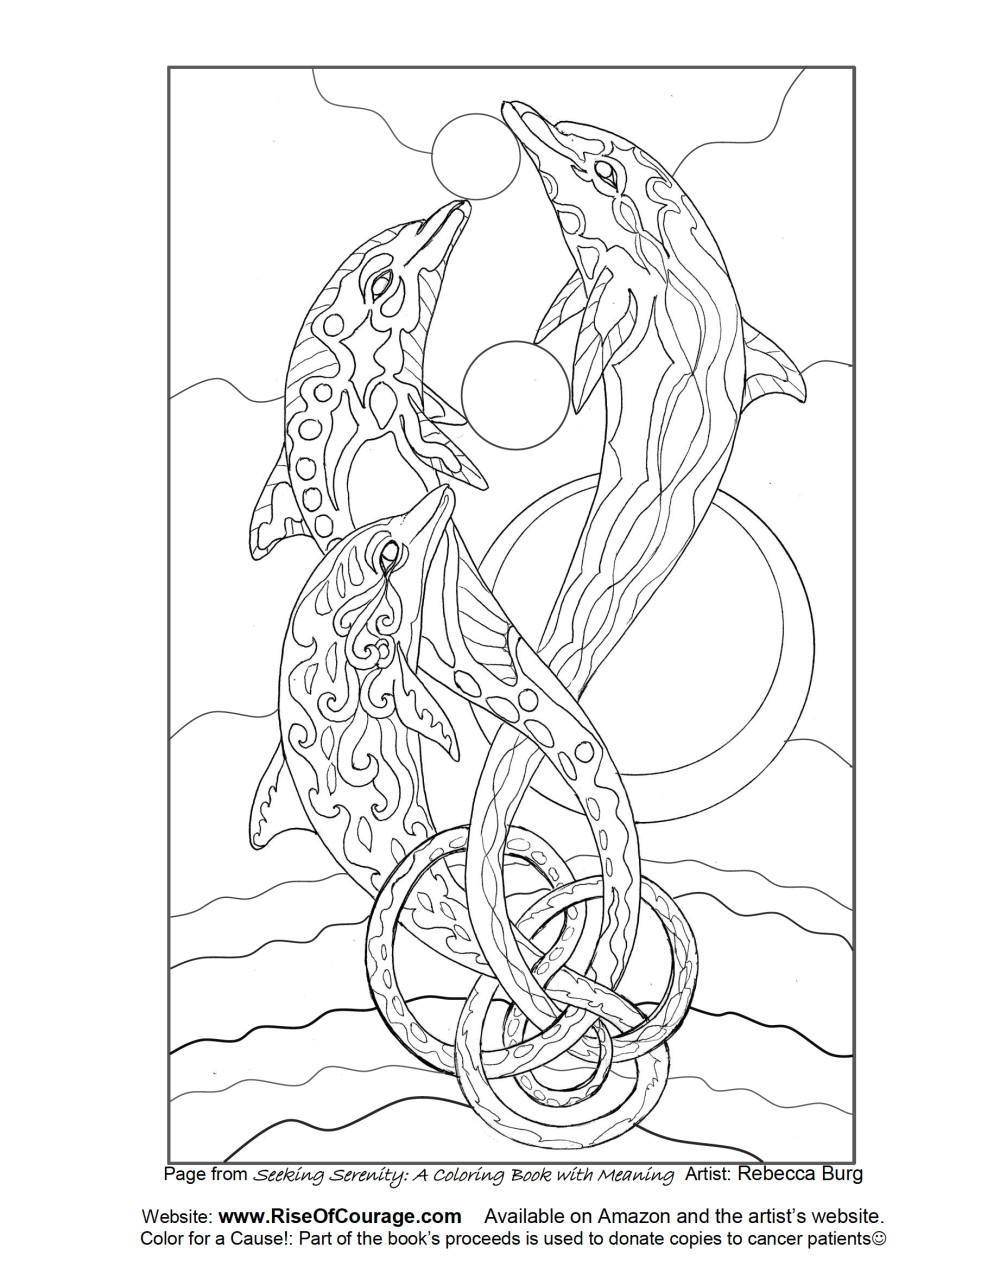 Free Coloring Page dolphin ocean sea life From the Seeking Serenity Adult Coloring Book By Rebecca Burg